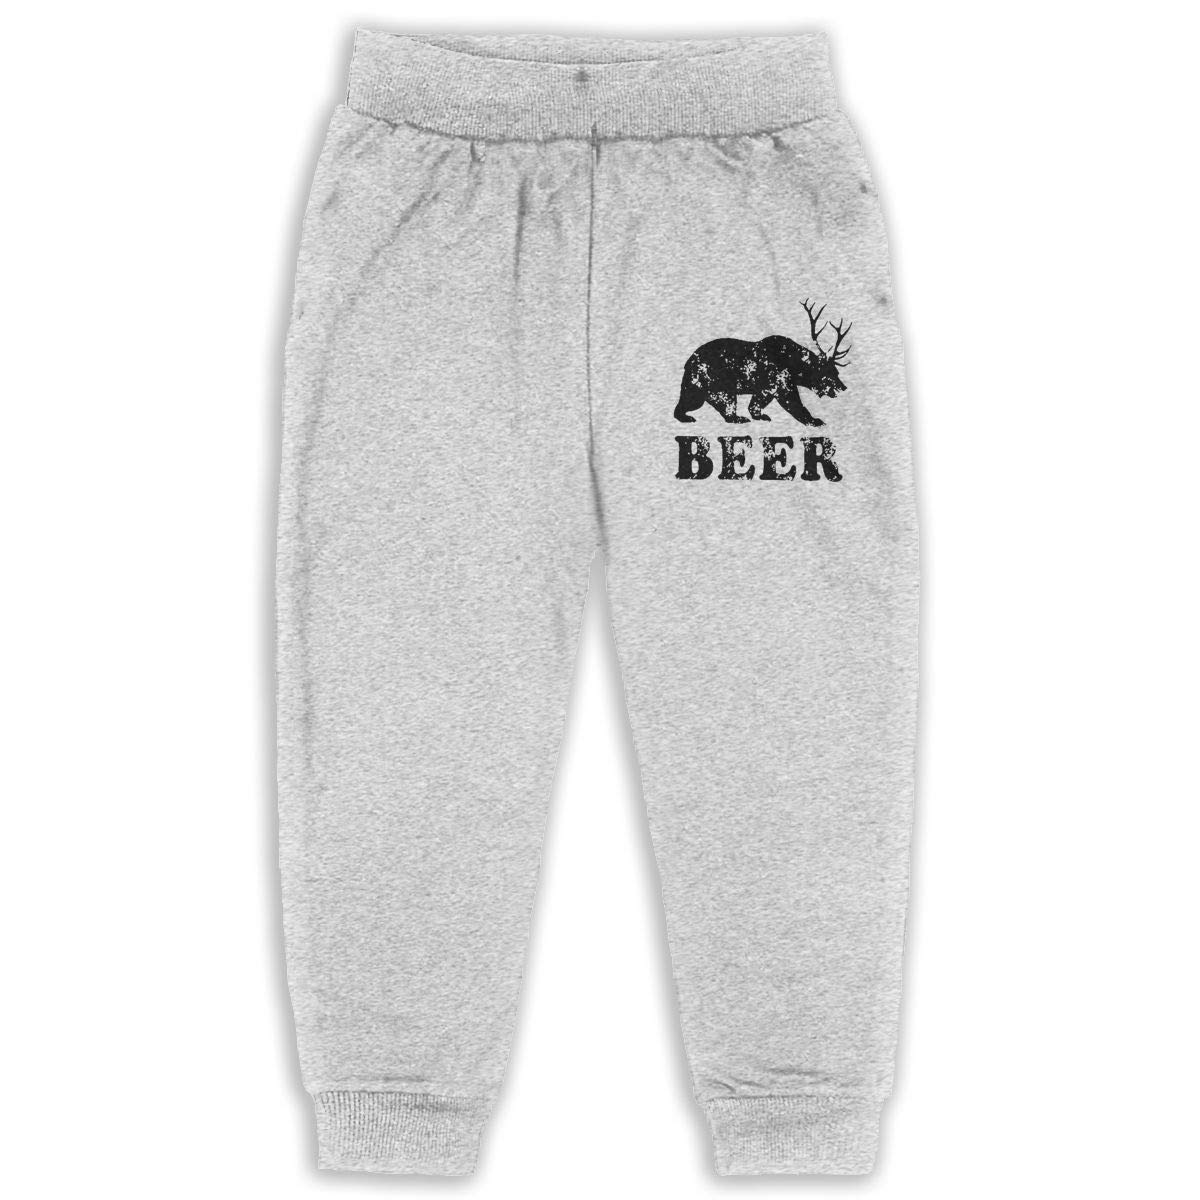 LFCLOSET Beer Bear Deer Children Active Jogger Sweatpants Basic Elastic Sport Pants Gray